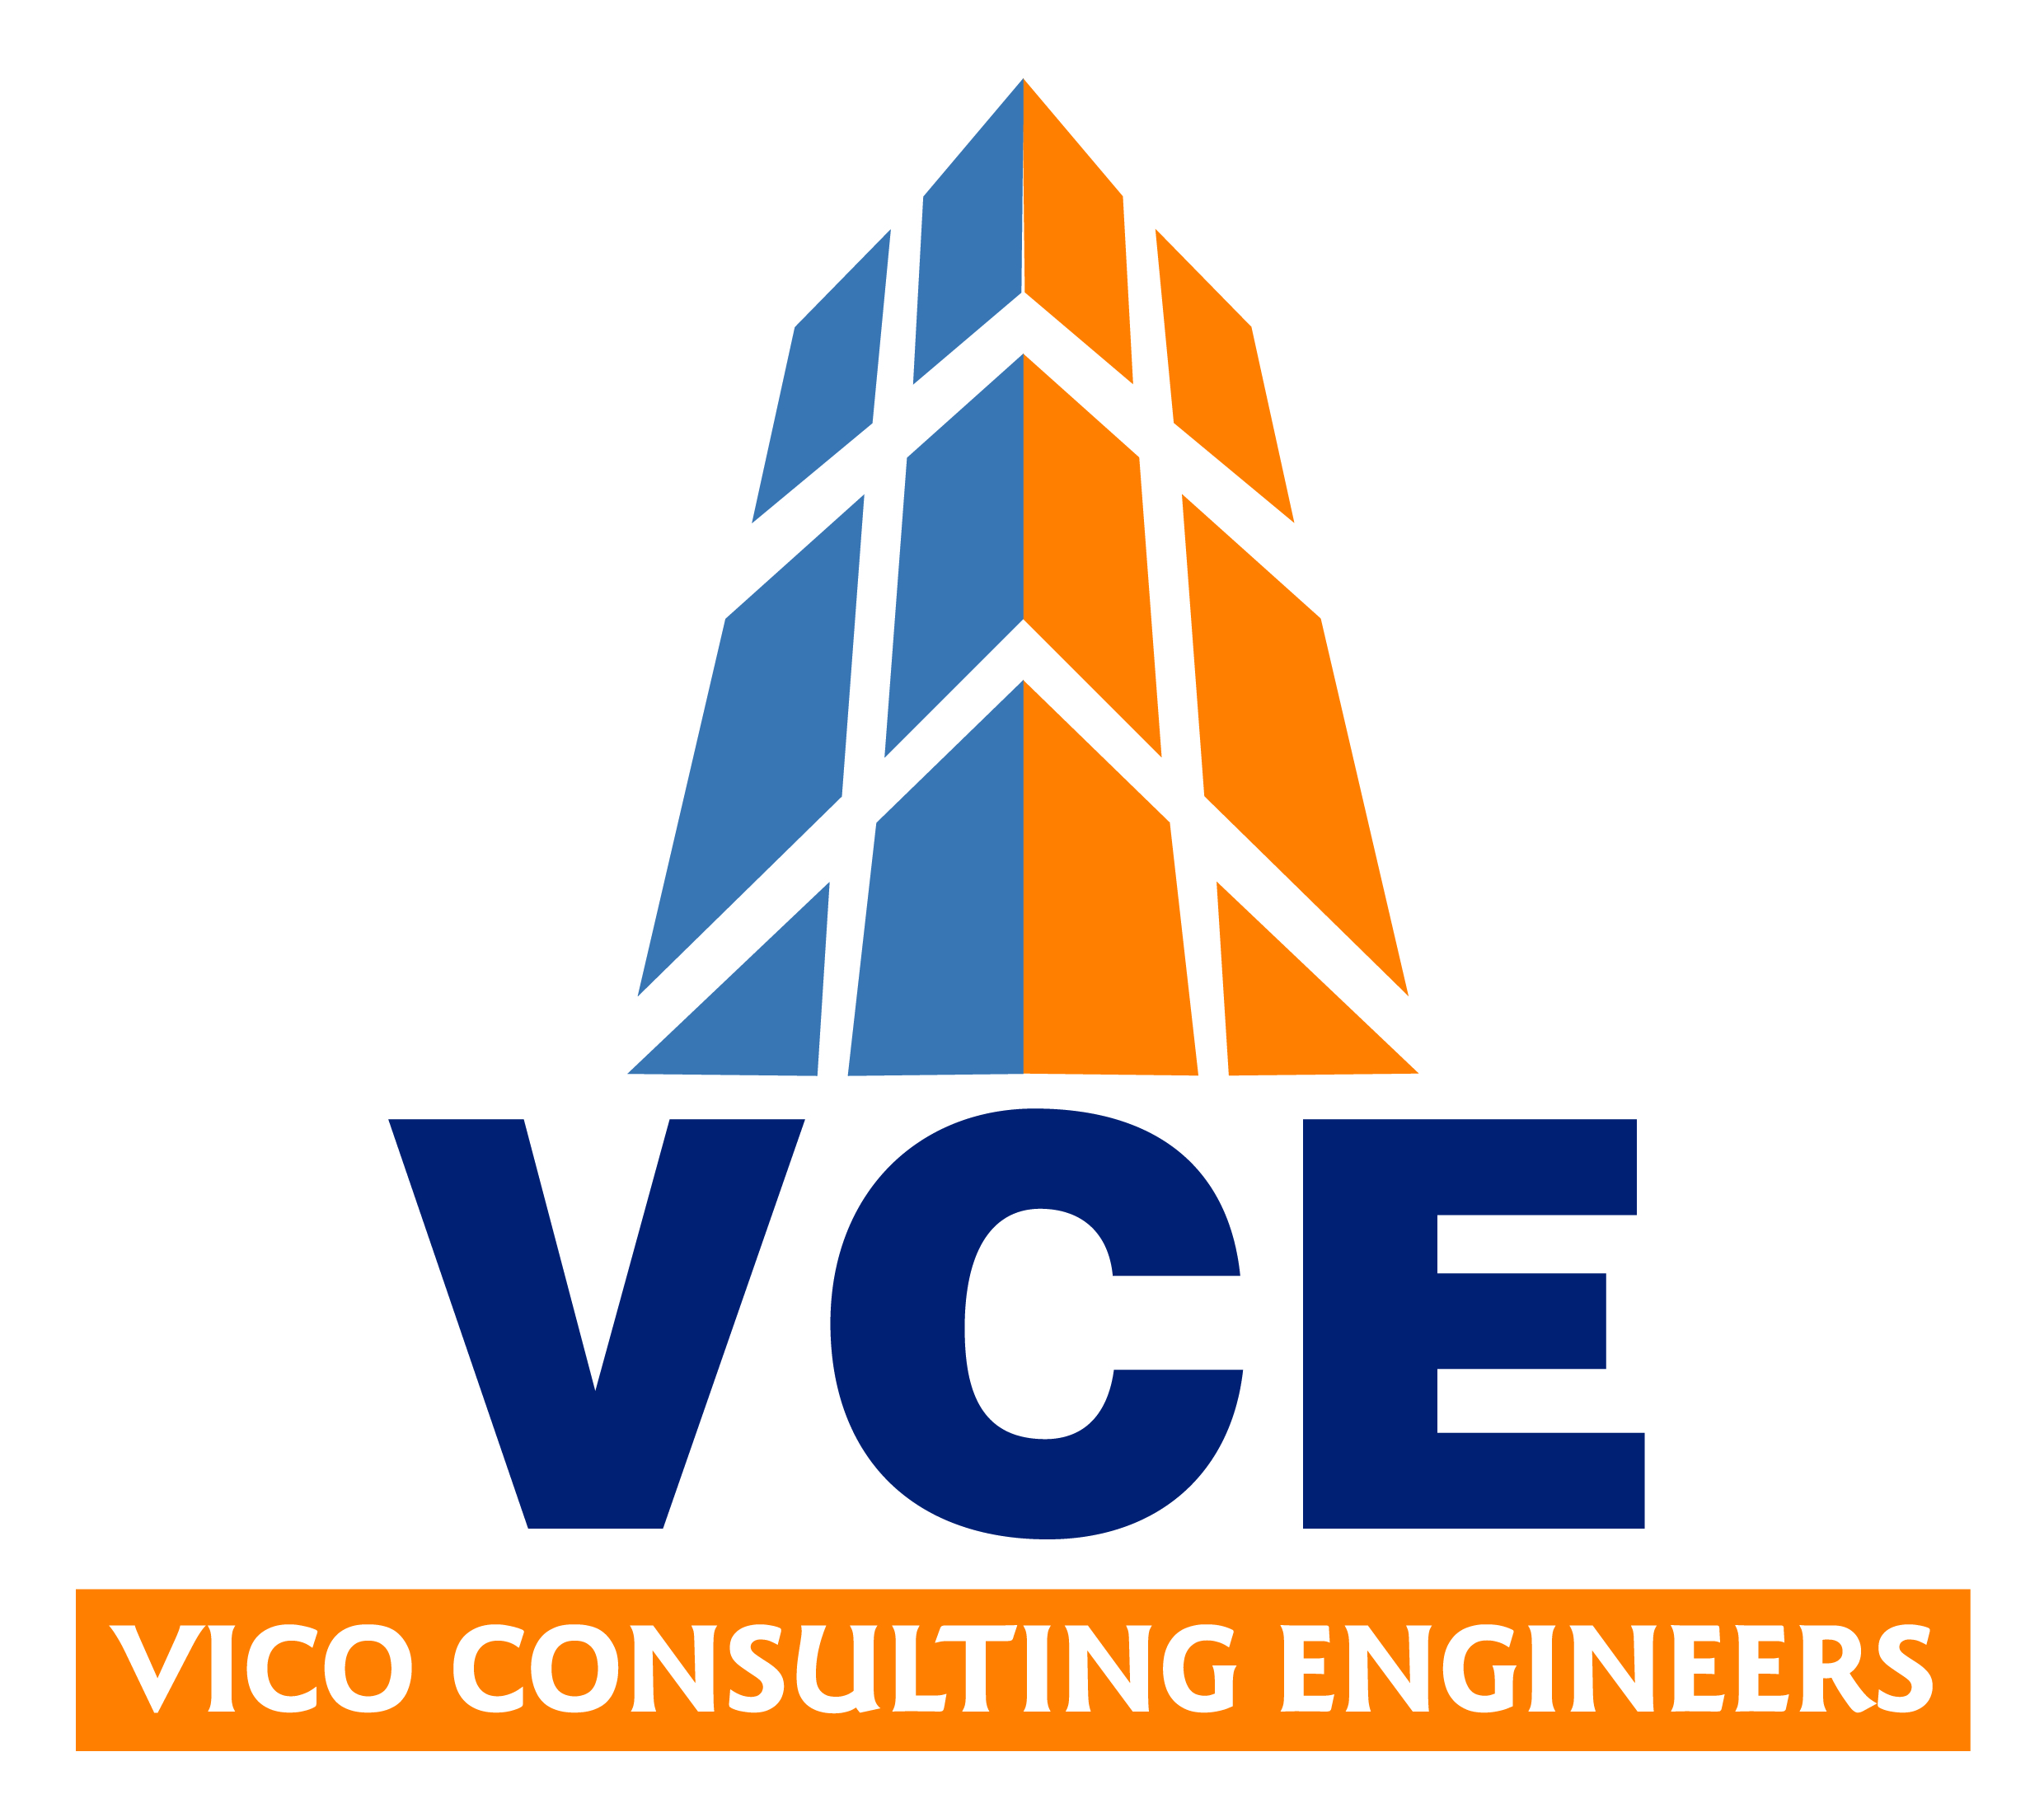 Vico Consulting Engineers